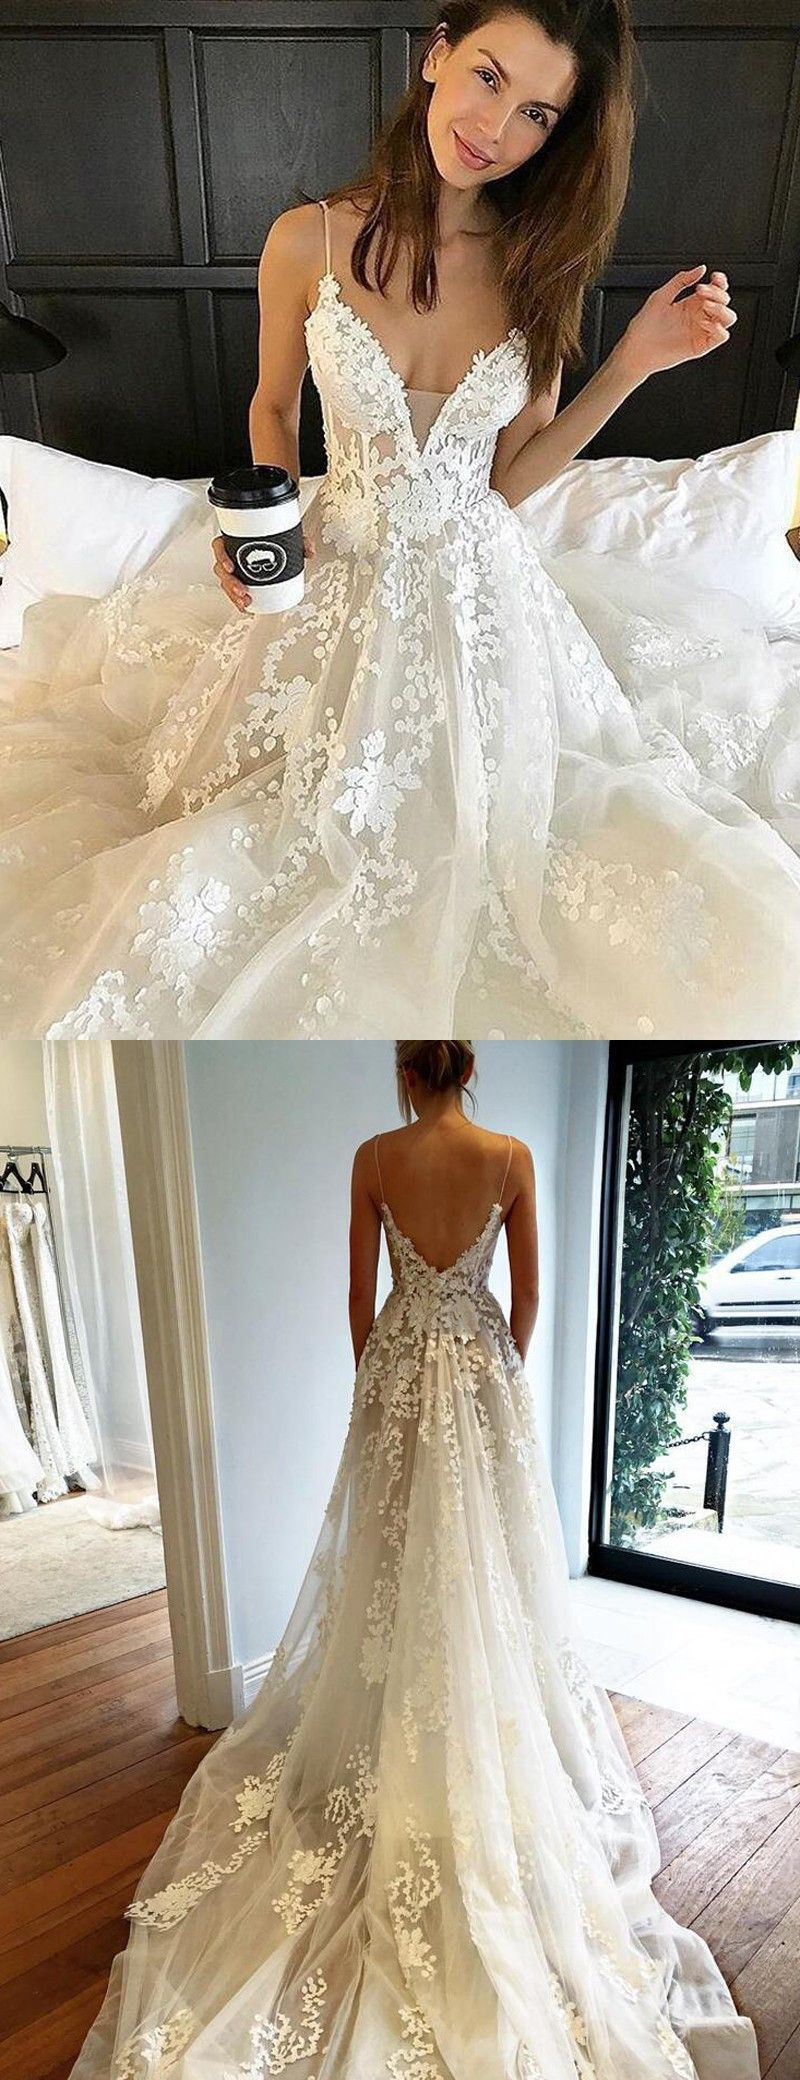 Simple spaghetti straps sweep train backless wedding dress with